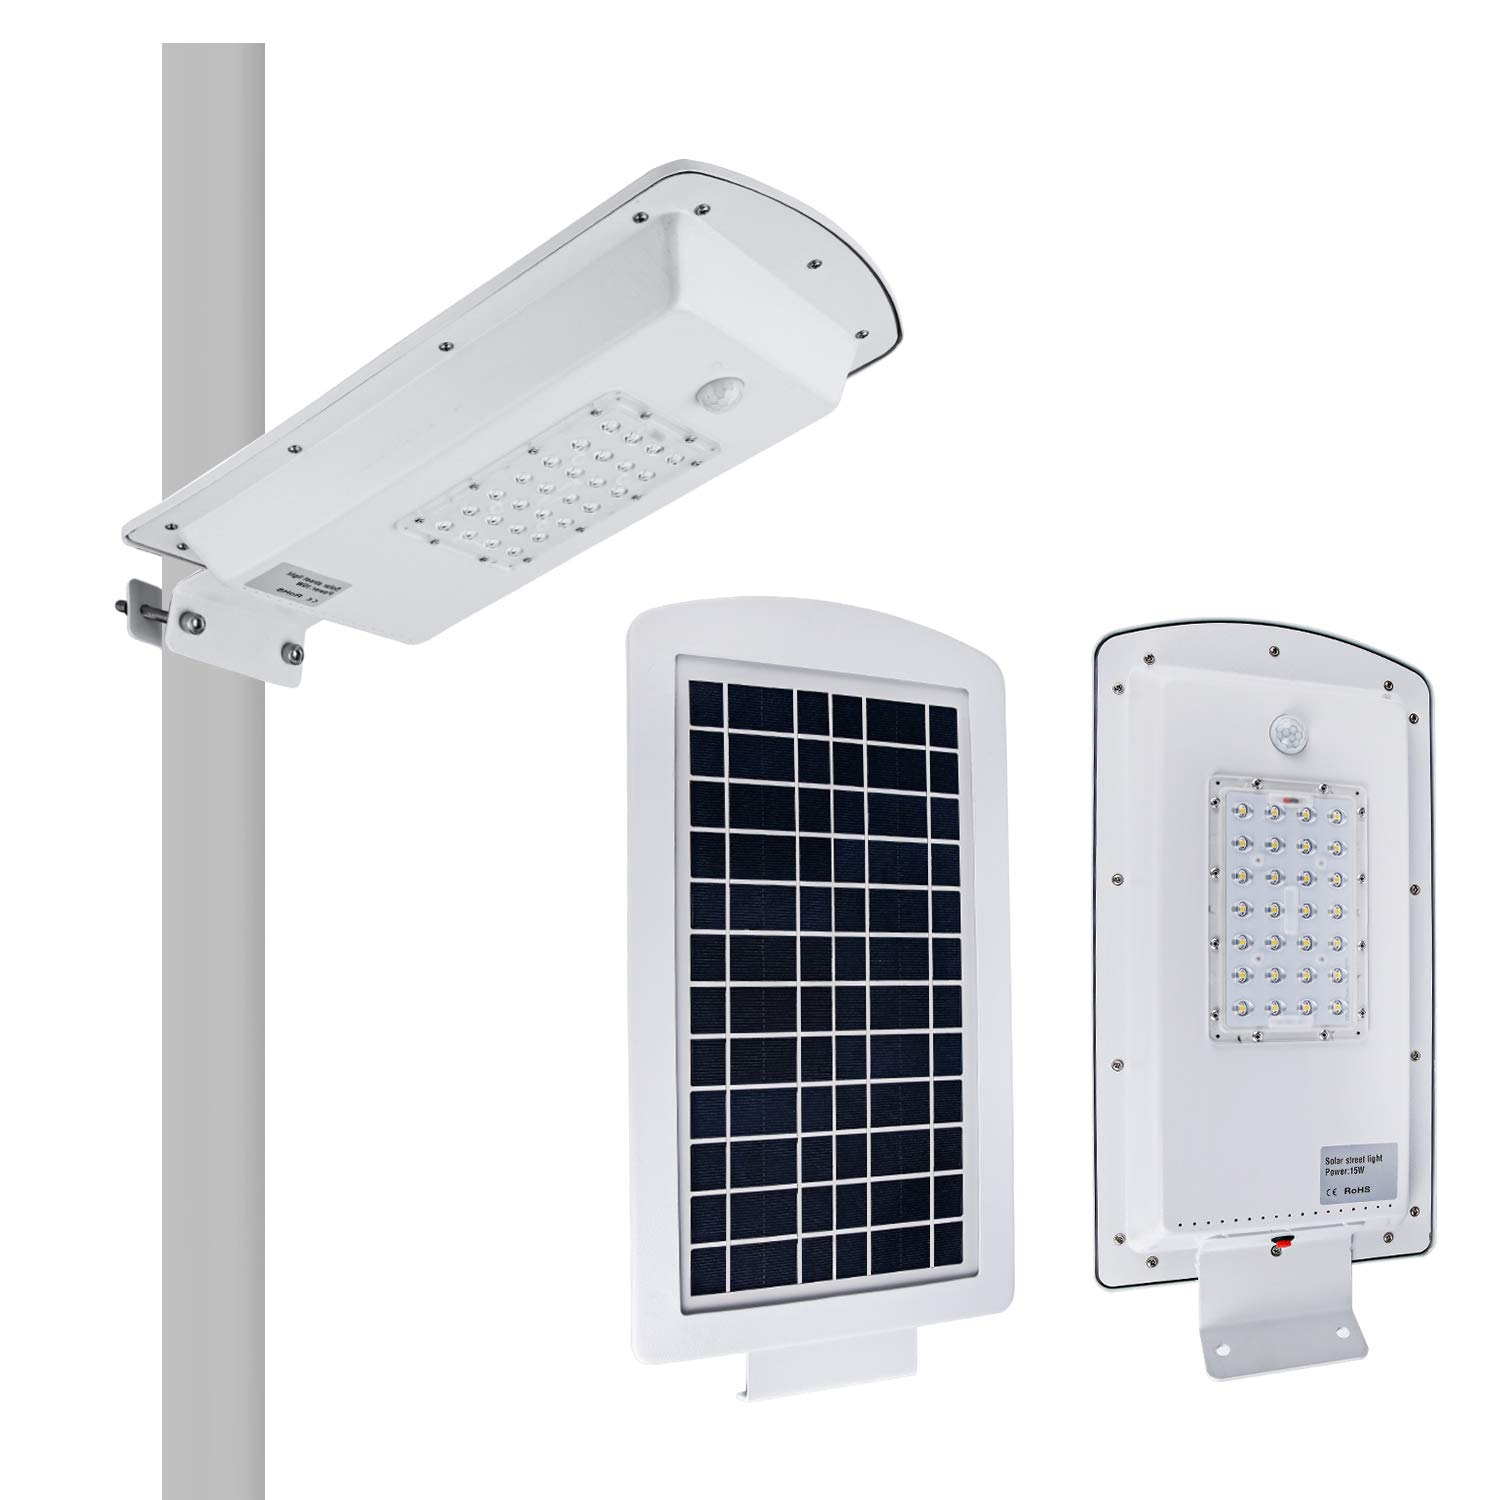 Brillihood 10W LED Integrated Solar Street Light, IP65 Waterproof Dimmable Solar Pole Light with Motion Sensor, 6000K (Daylight White), Security Area Night Lamp for Indoor/Outdoor Lighting.